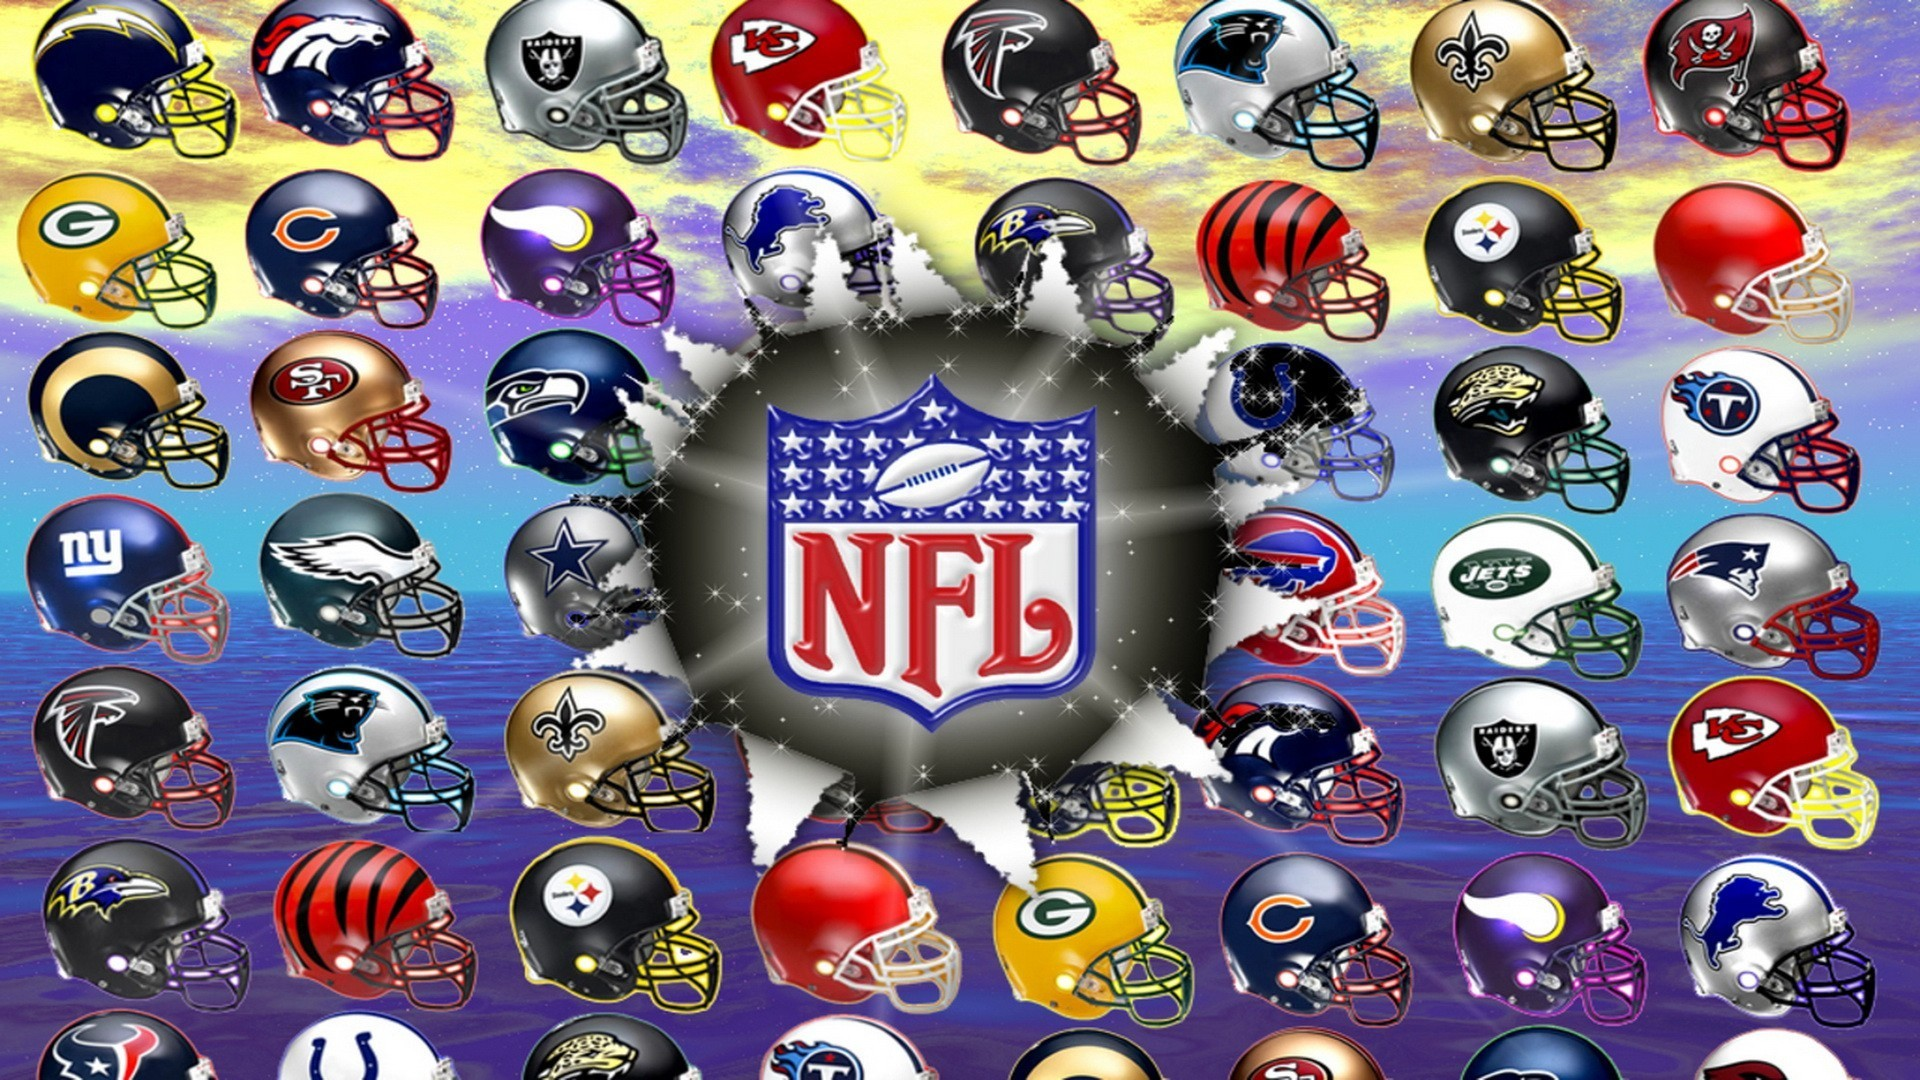 1920x1080 nfl team logo wallpaper hd -#main